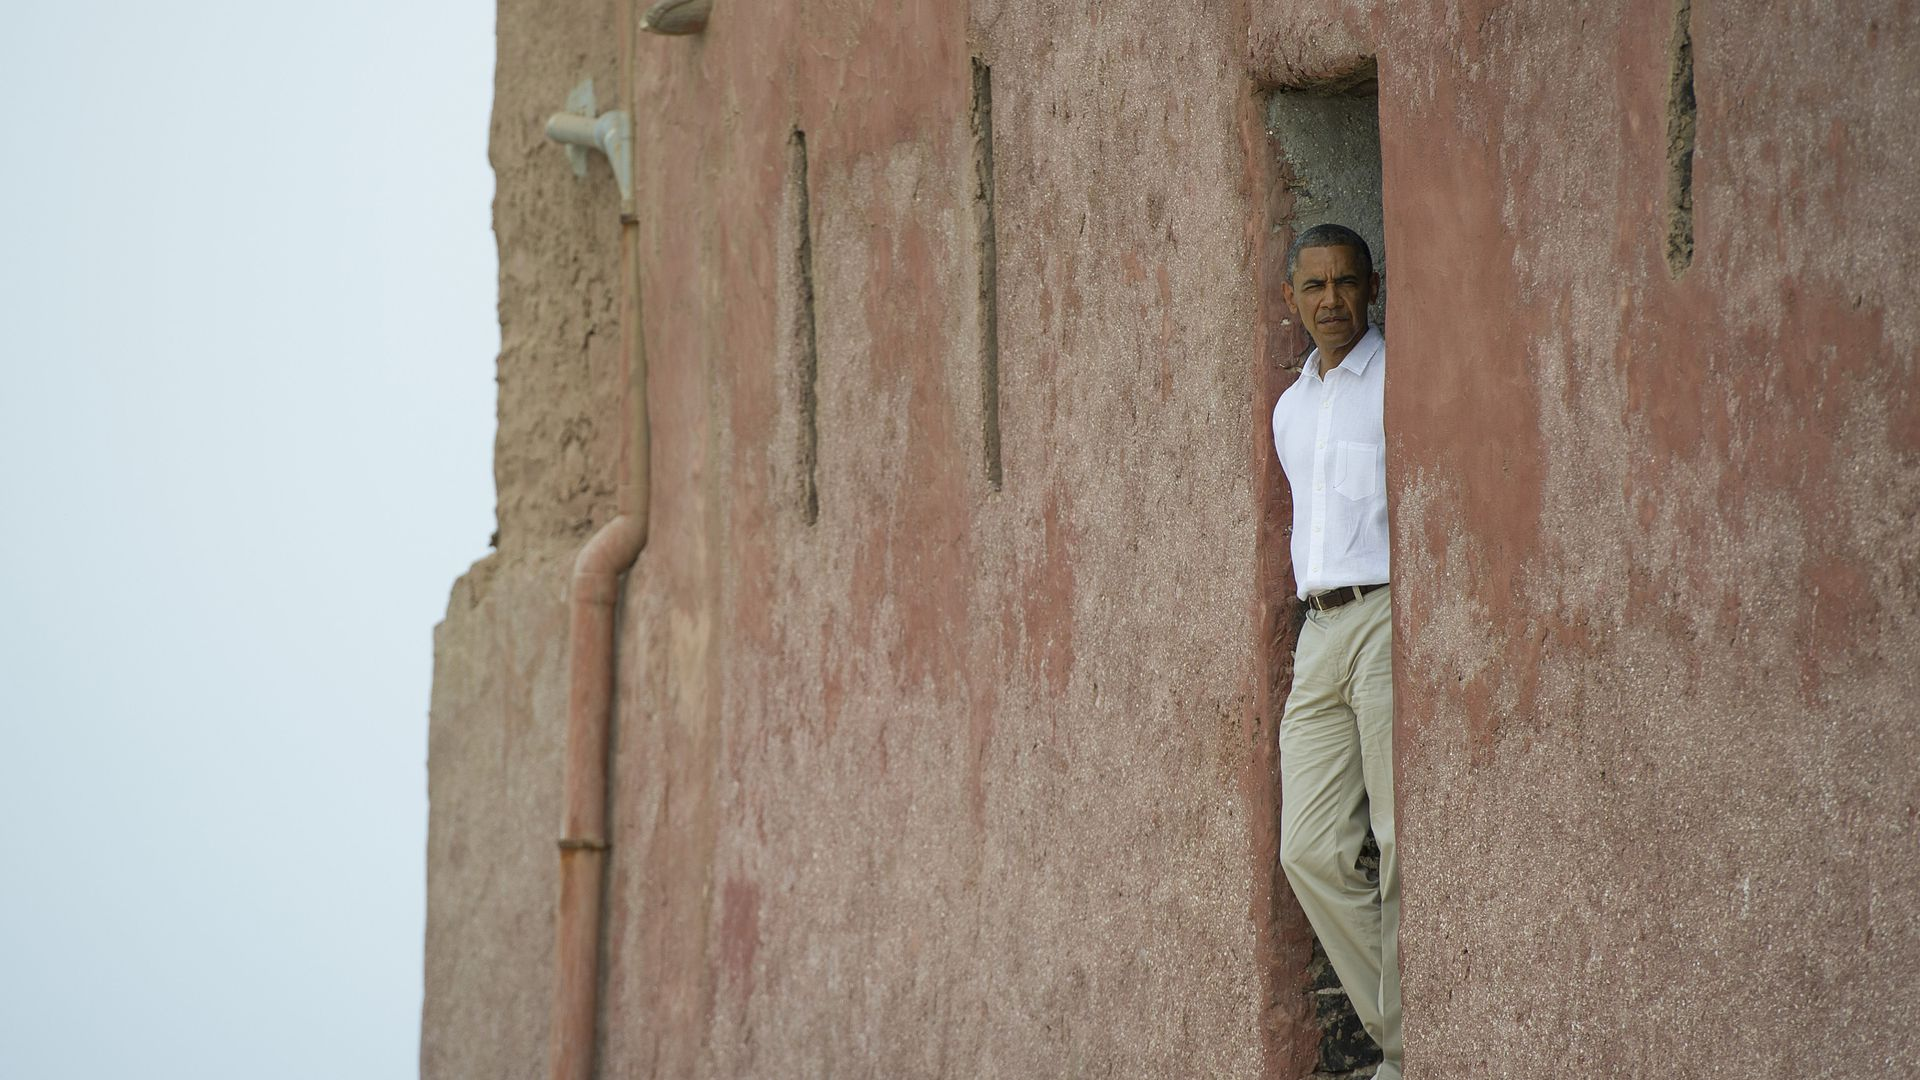 Obama stands in a doorway looking out